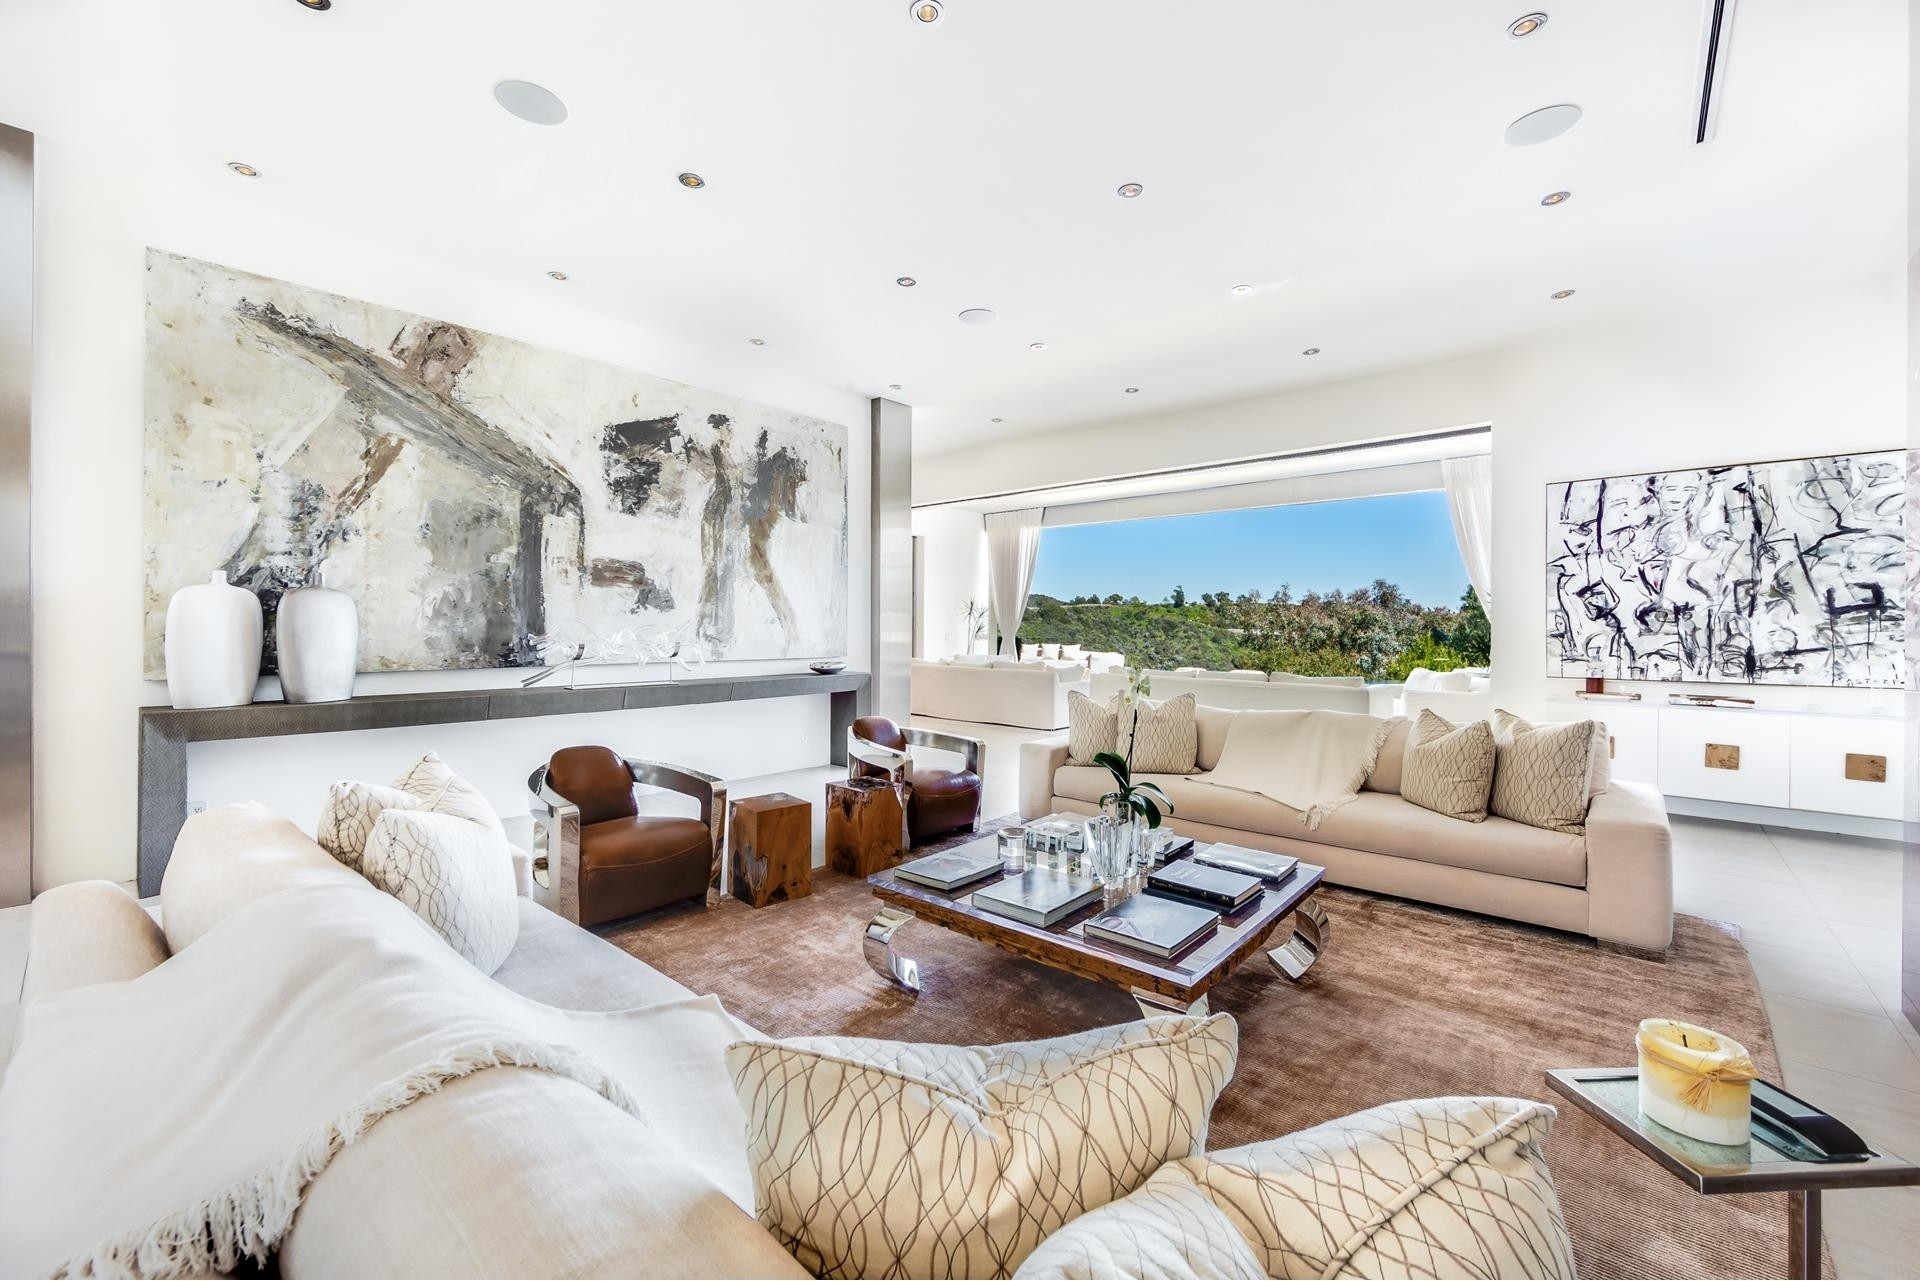 10. Single Family Homes for Sale at Bel Air, Los Angeles, CA 90077